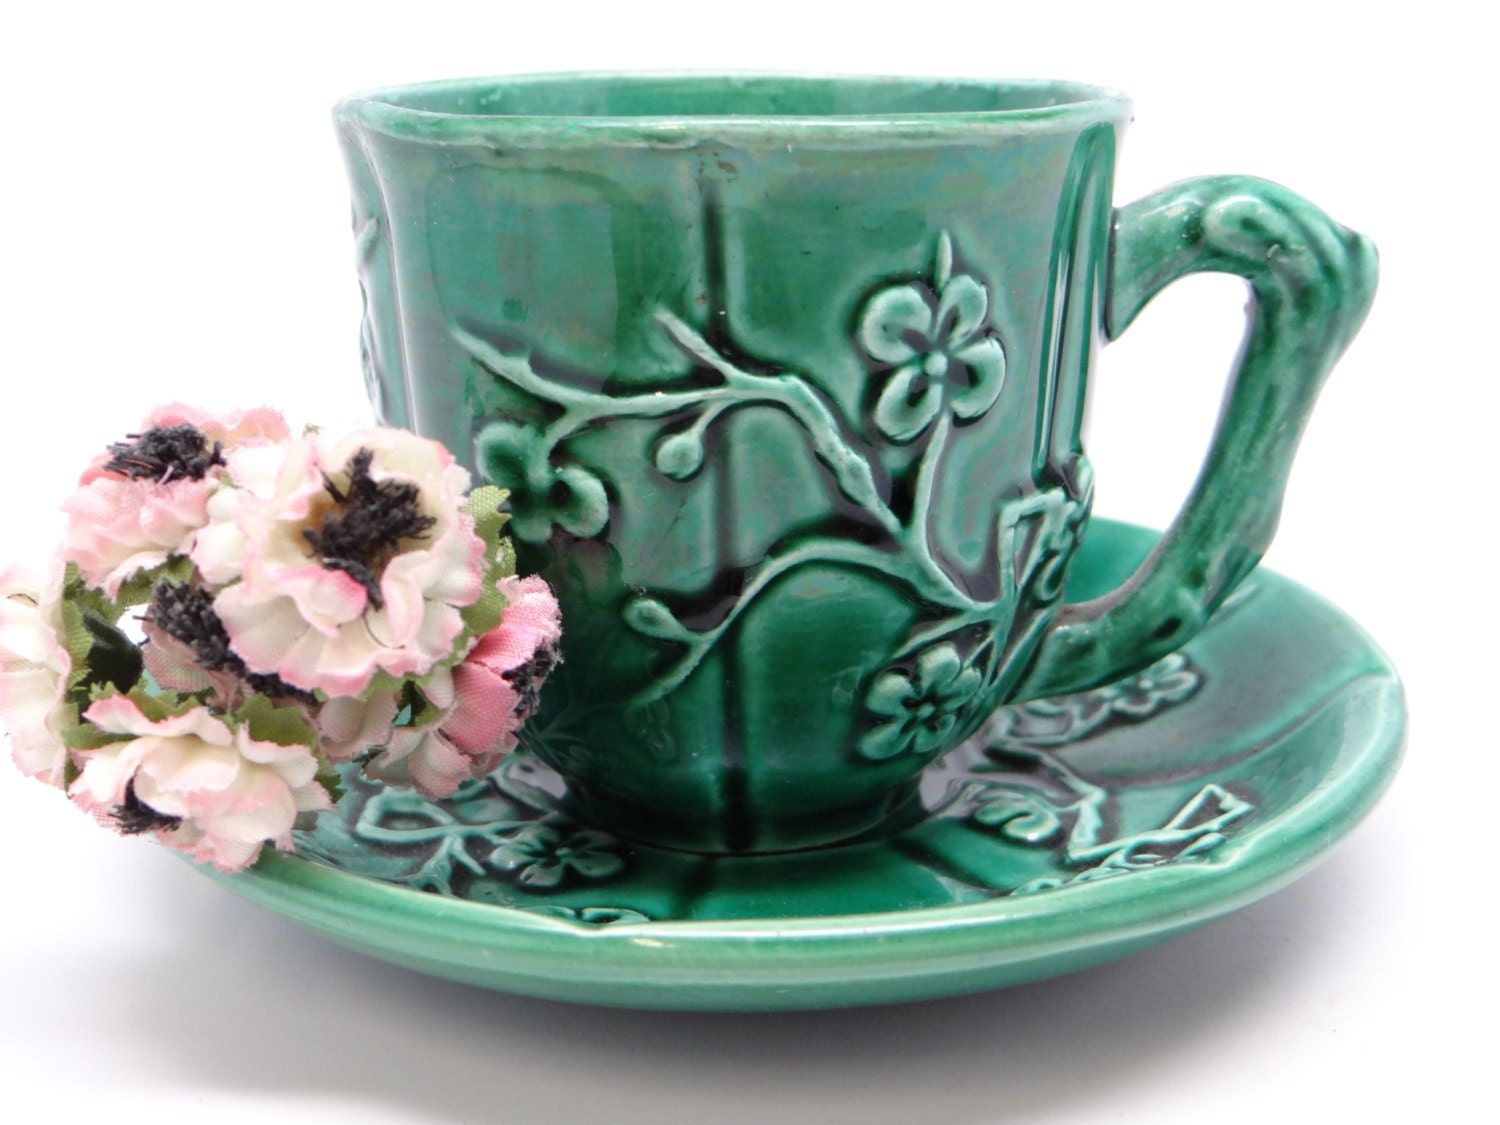 antique faiencerie de gien majolica green cup saucer french. Black Bedroom Furniture Sets. Home Design Ideas